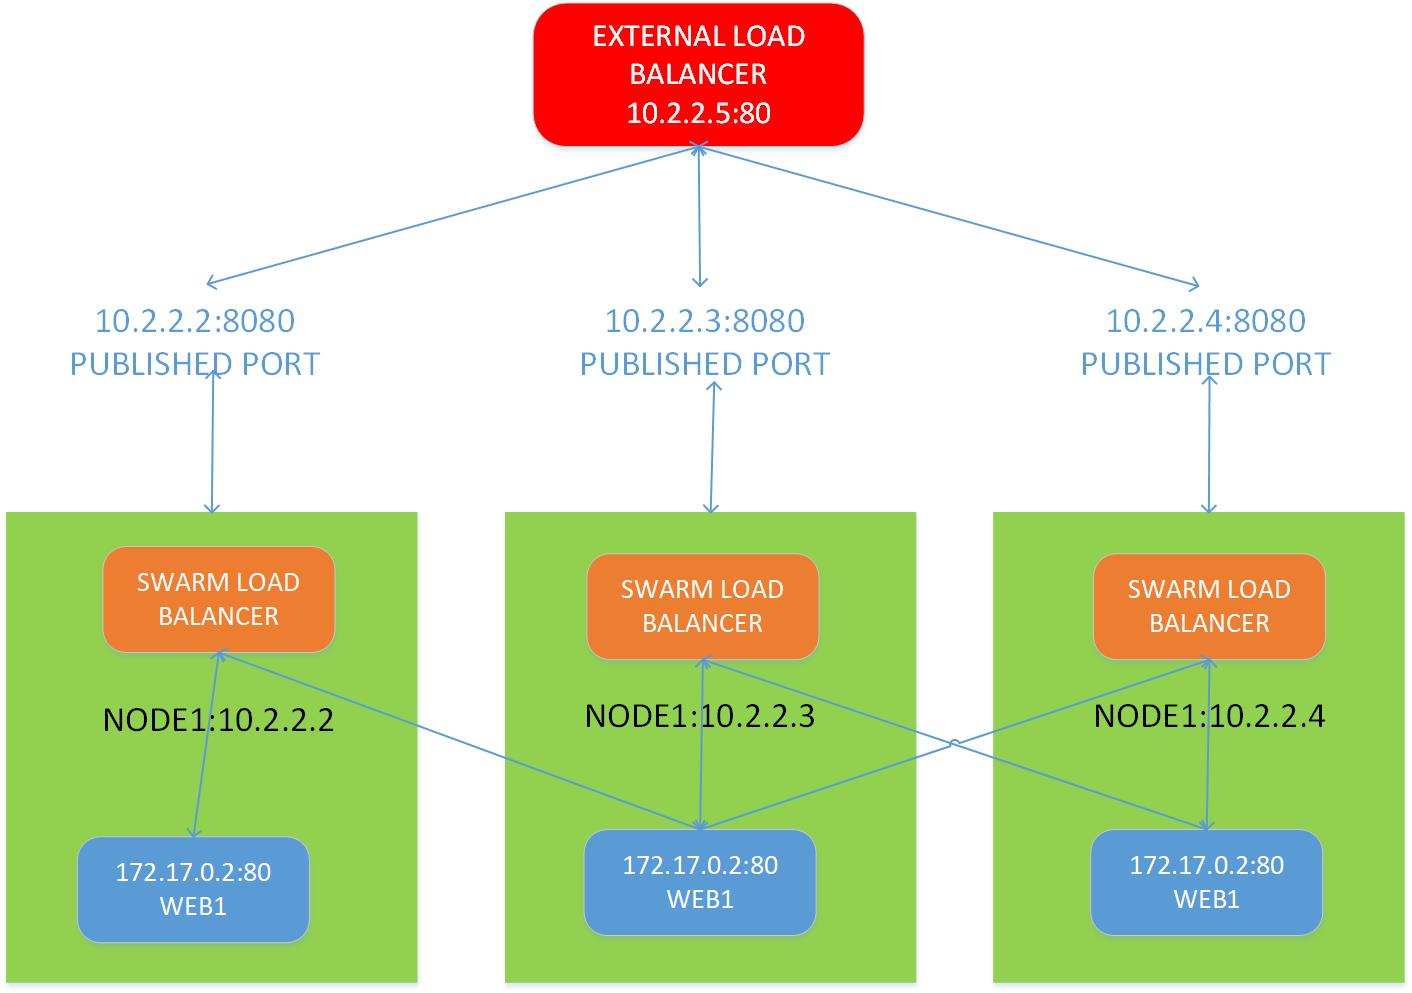 Docker swarm external load balancer